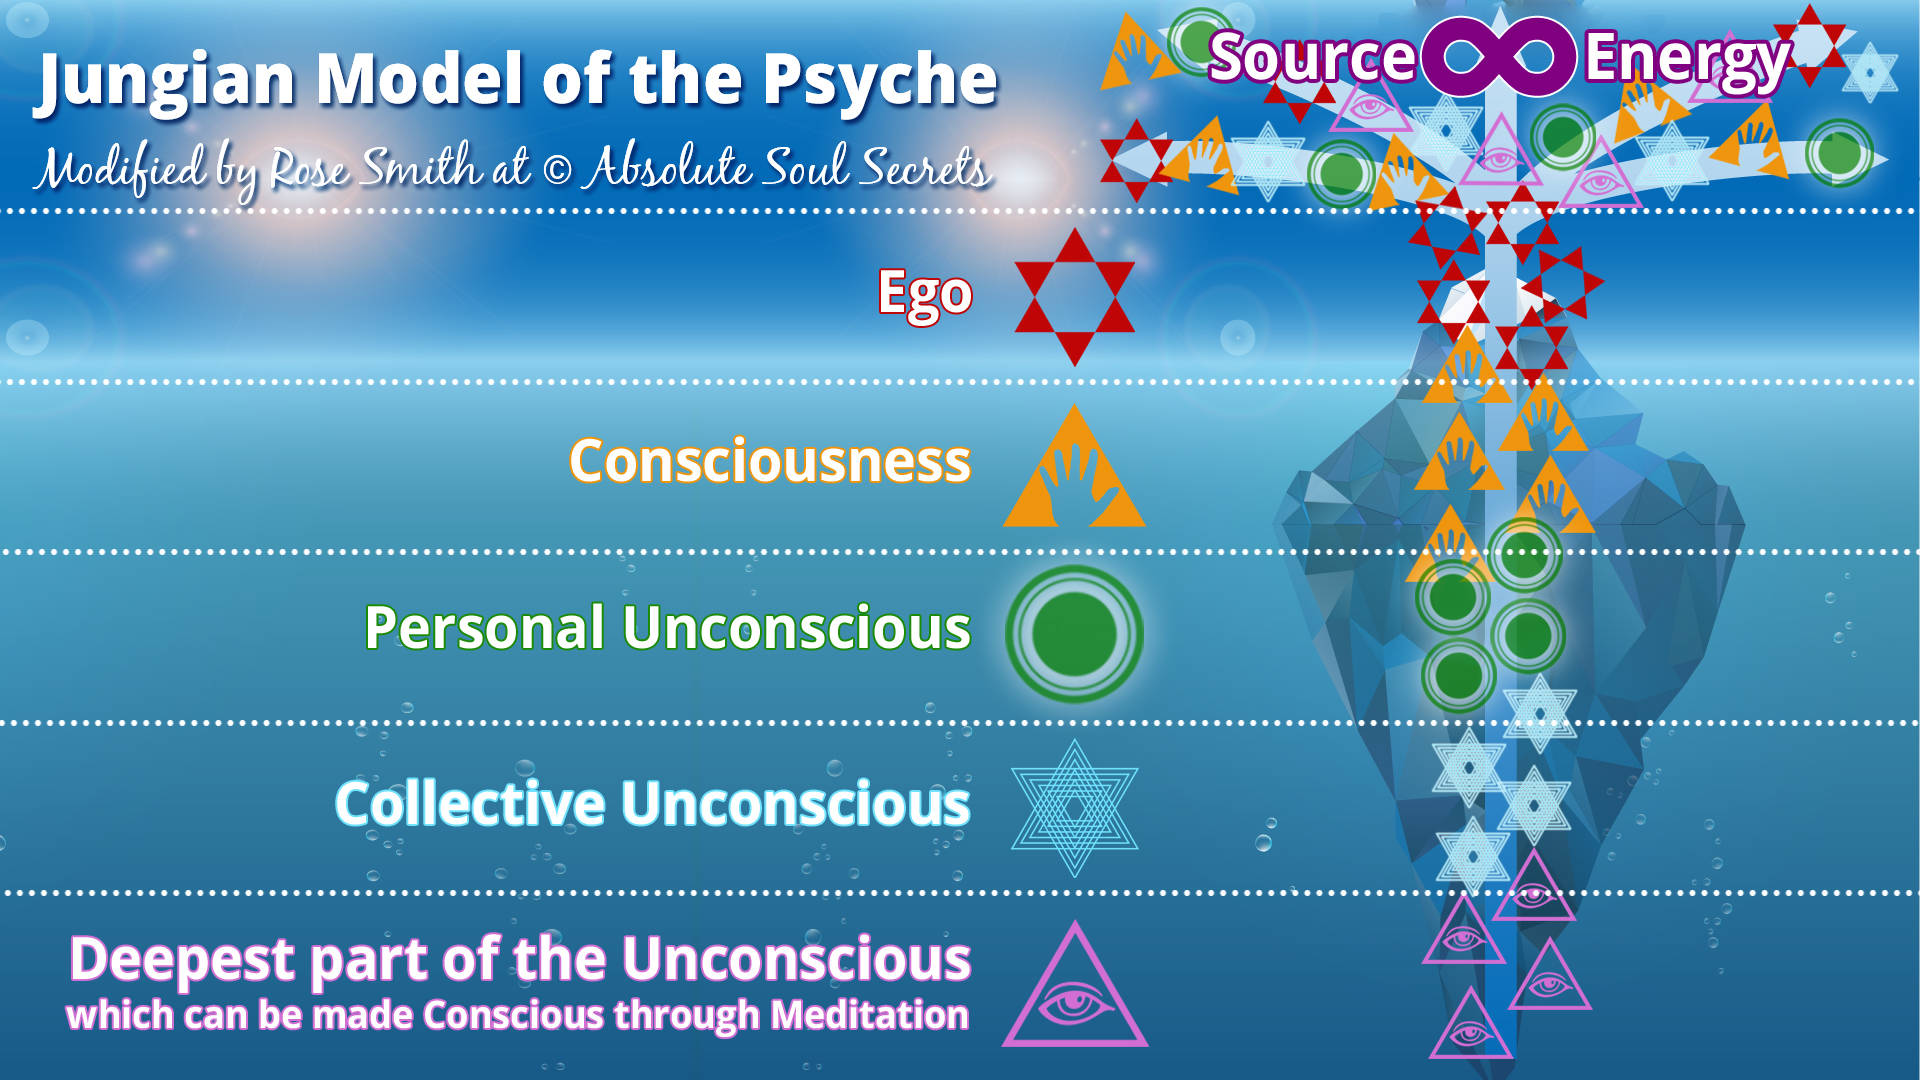 image of the jungian model of the psyche by rose smith